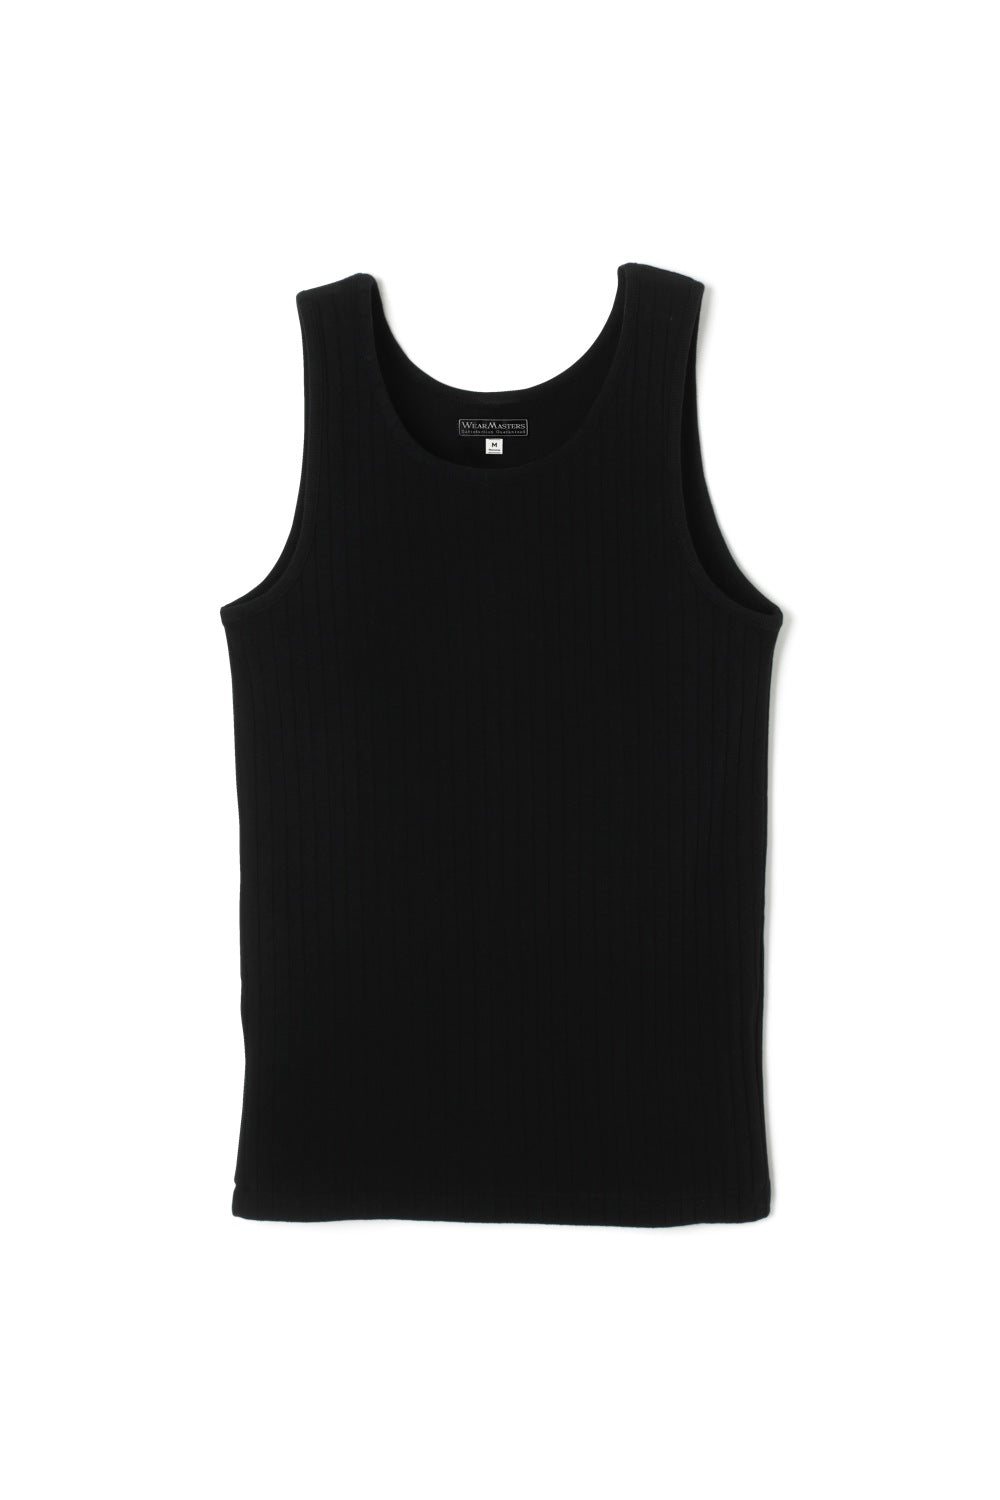 Lot.428 Dropped Stitch Tank Top -Black-